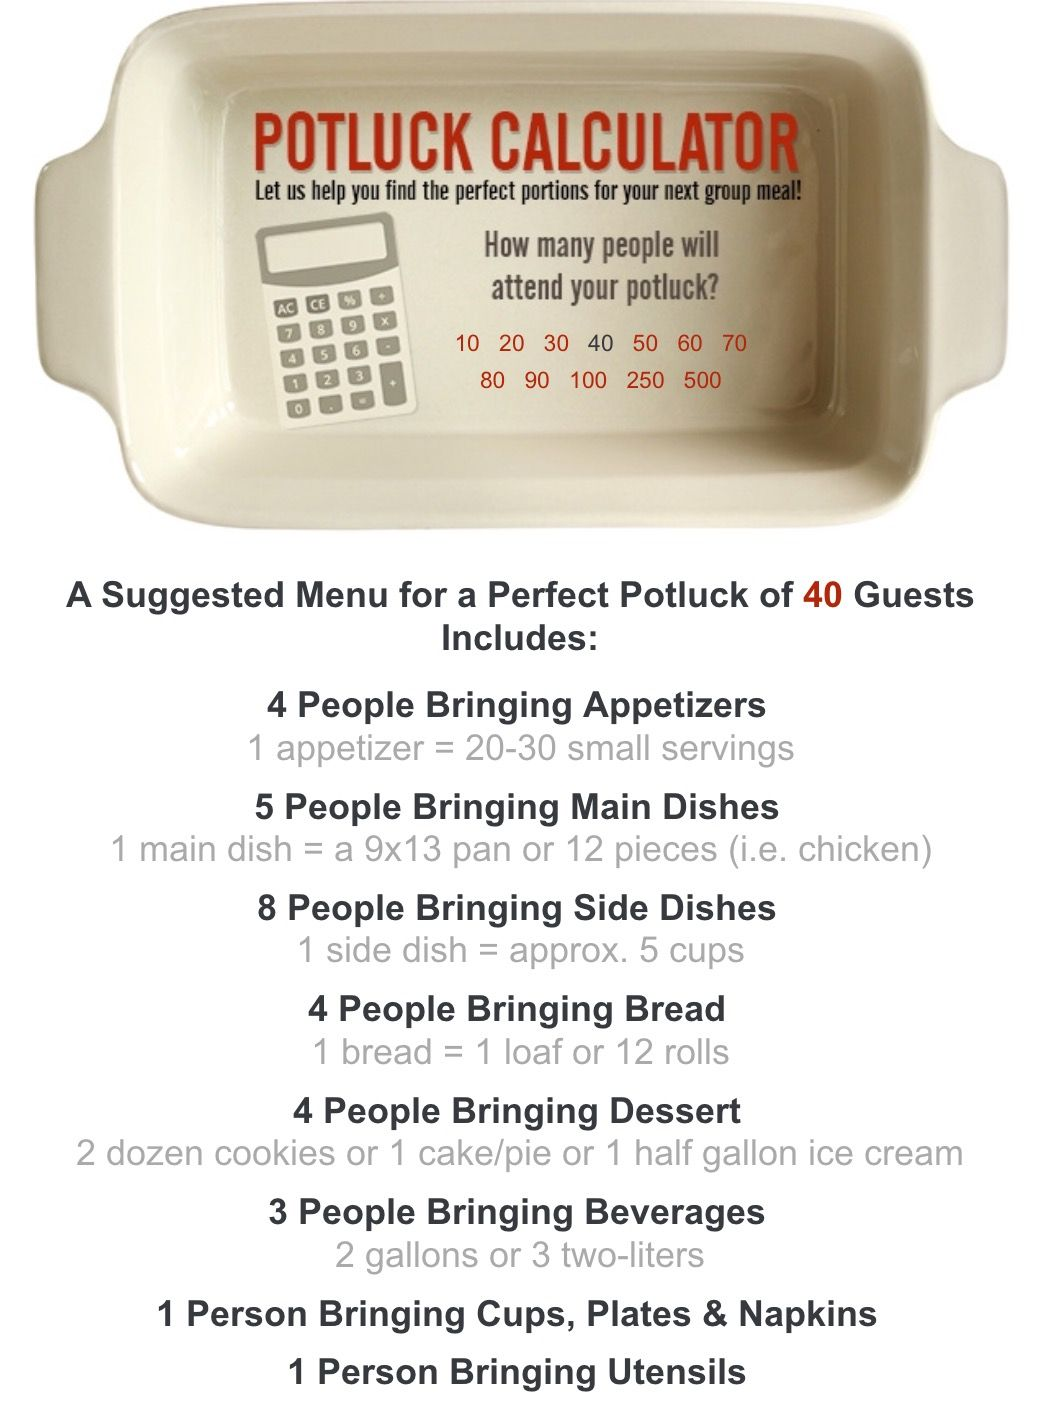 Potluck For 40 People How Much Food To Calculate Food Pinterest